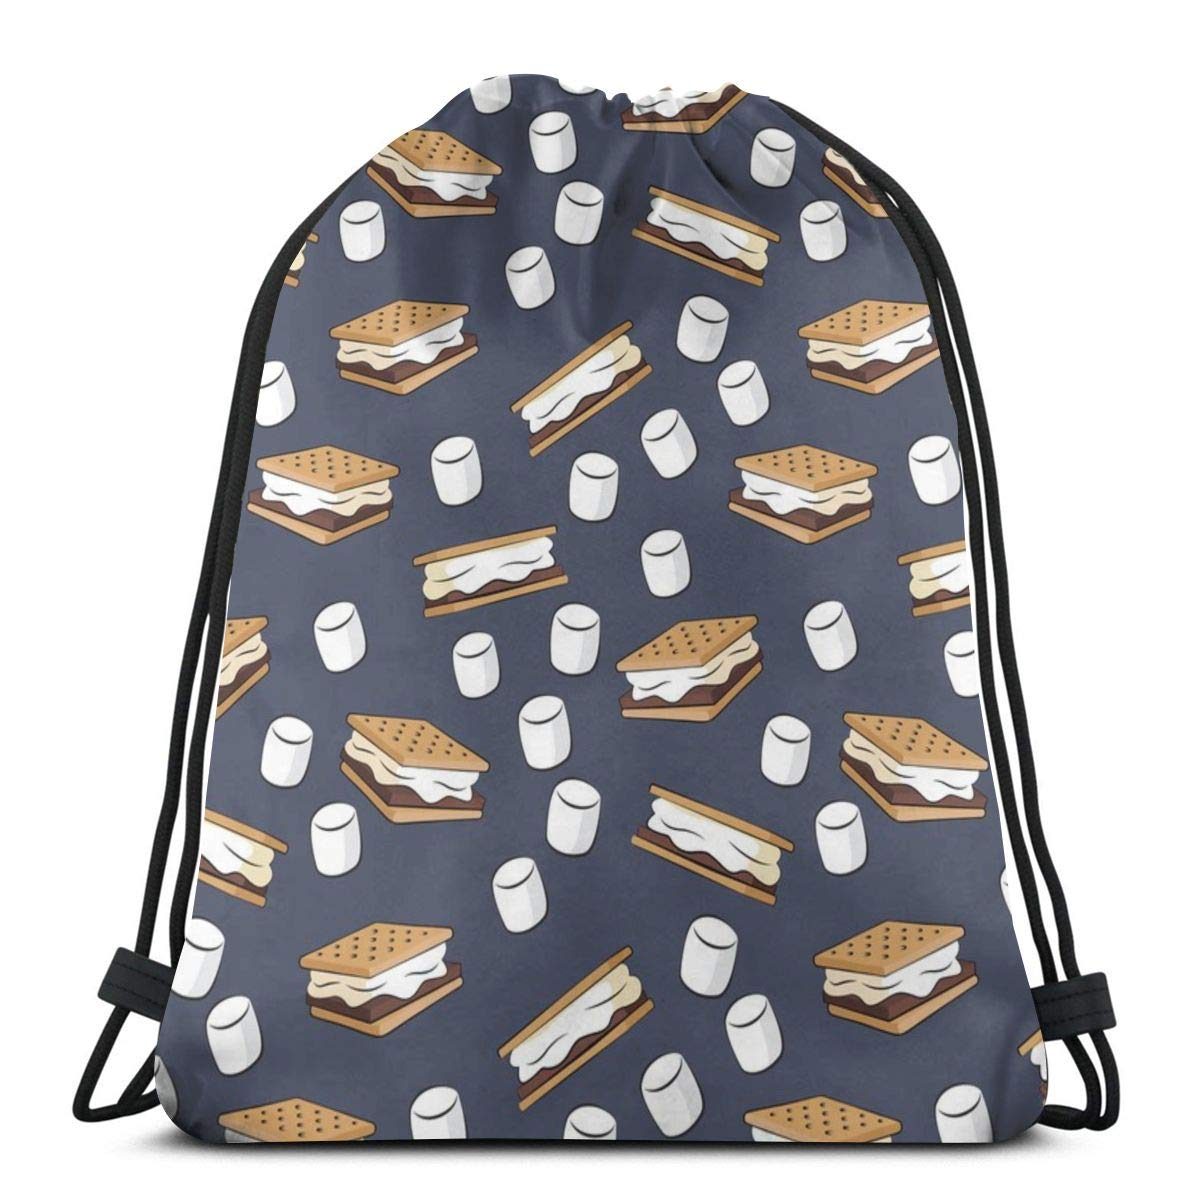 Smores and Marshmallows on Adventure Blue/_52606 Custom Drawstring Shoulder Bags Gym Bag Travel Backpack Lightweight Gym for Man Women 16.9x14